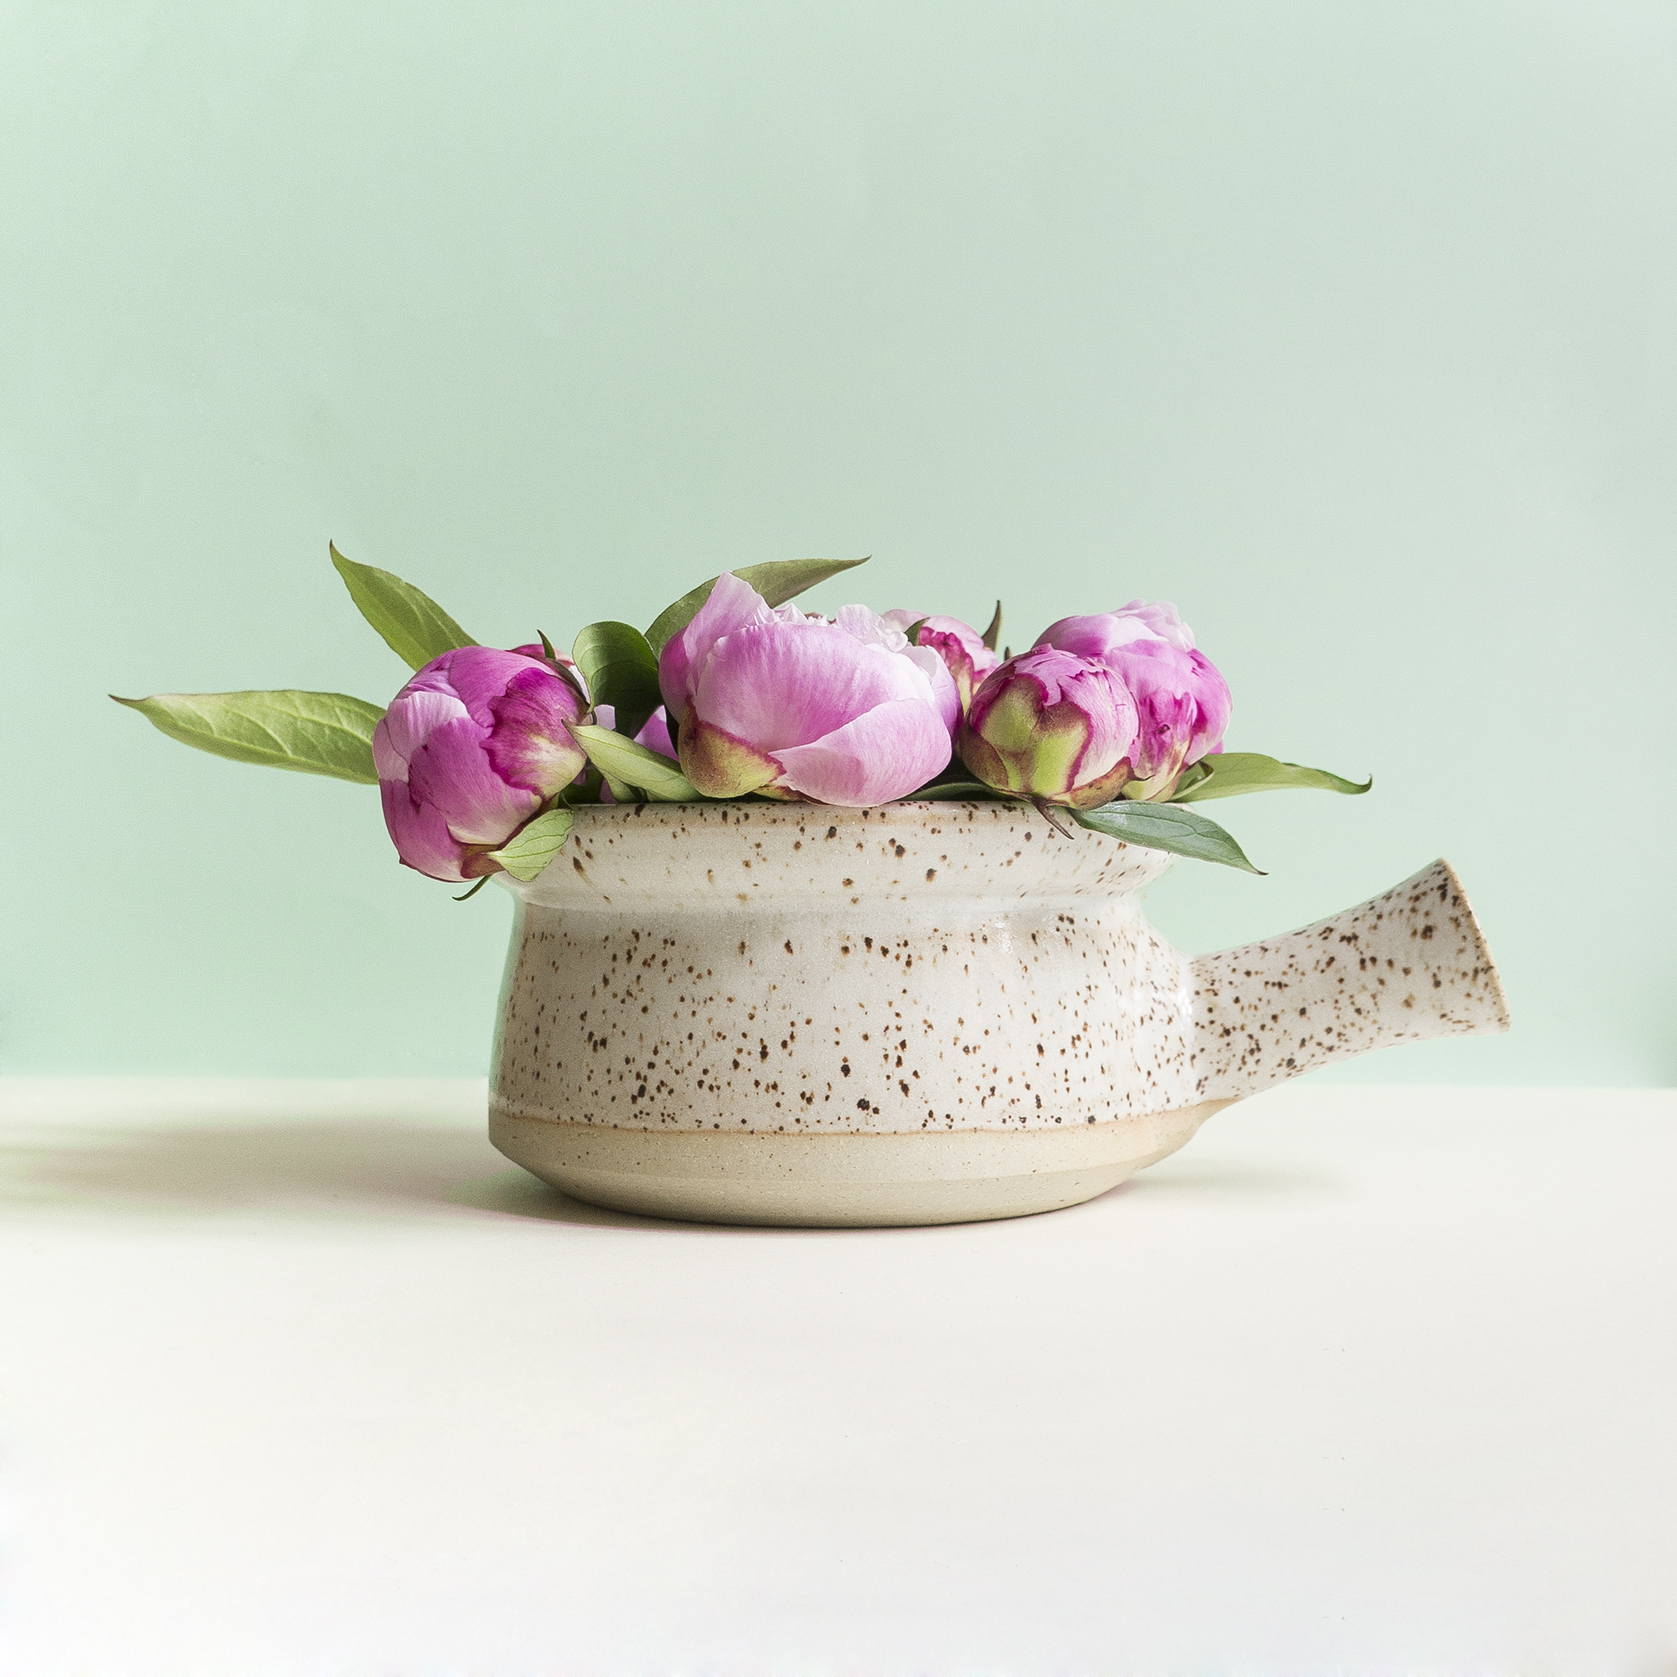 The classic midcentury terrine pot. With fancy speckles. So on fashion point..